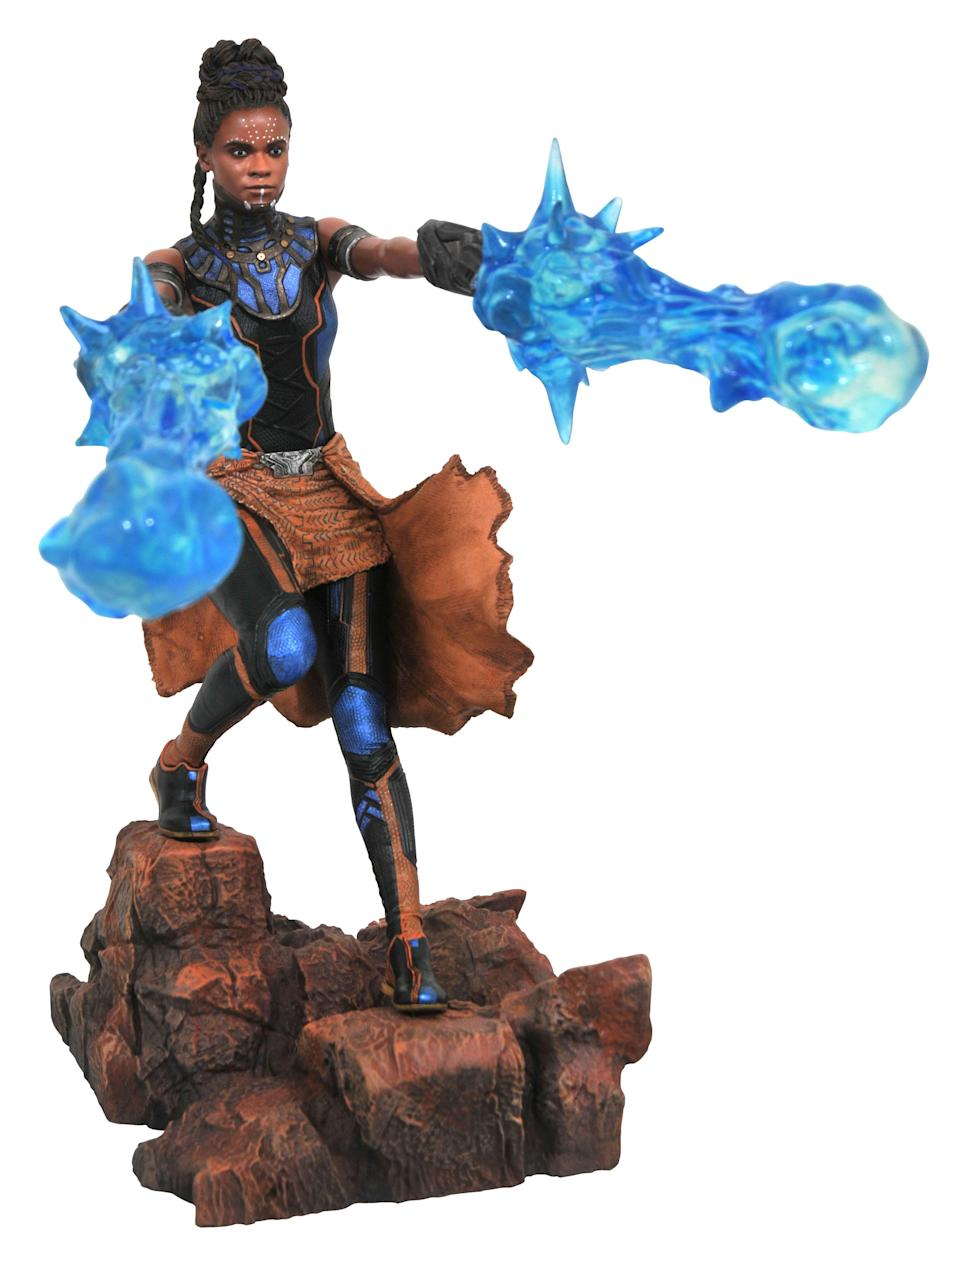 """<p>Letitia Wright's actual likeness was used for this figure, which was designed by famed conceptual artist <a rel=""""nofollow noopener"""" href=""""https://twitter.com/nelsonx"""" target=""""_blank"""" data-ylk=""""slk:Nelson Asencio"""" class=""""link rapid-noclick-resp"""">Nelson Asencio</a>, and sculpted by the award-winning <a rel=""""nofollow noopener"""" href=""""https://www.instagram.com/roccosculptor/?hl=en"""" target=""""_blank"""" data-ylk=""""slk:Rocco Tartamella"""" class=""""link rapid-noclick-resp"""">Rocco Tartamella</a>, who has also sculpted figures of Marvel favorites like Thor and Jessica Jones. $45 (Photo: Diamond Select Toys) </p>"""